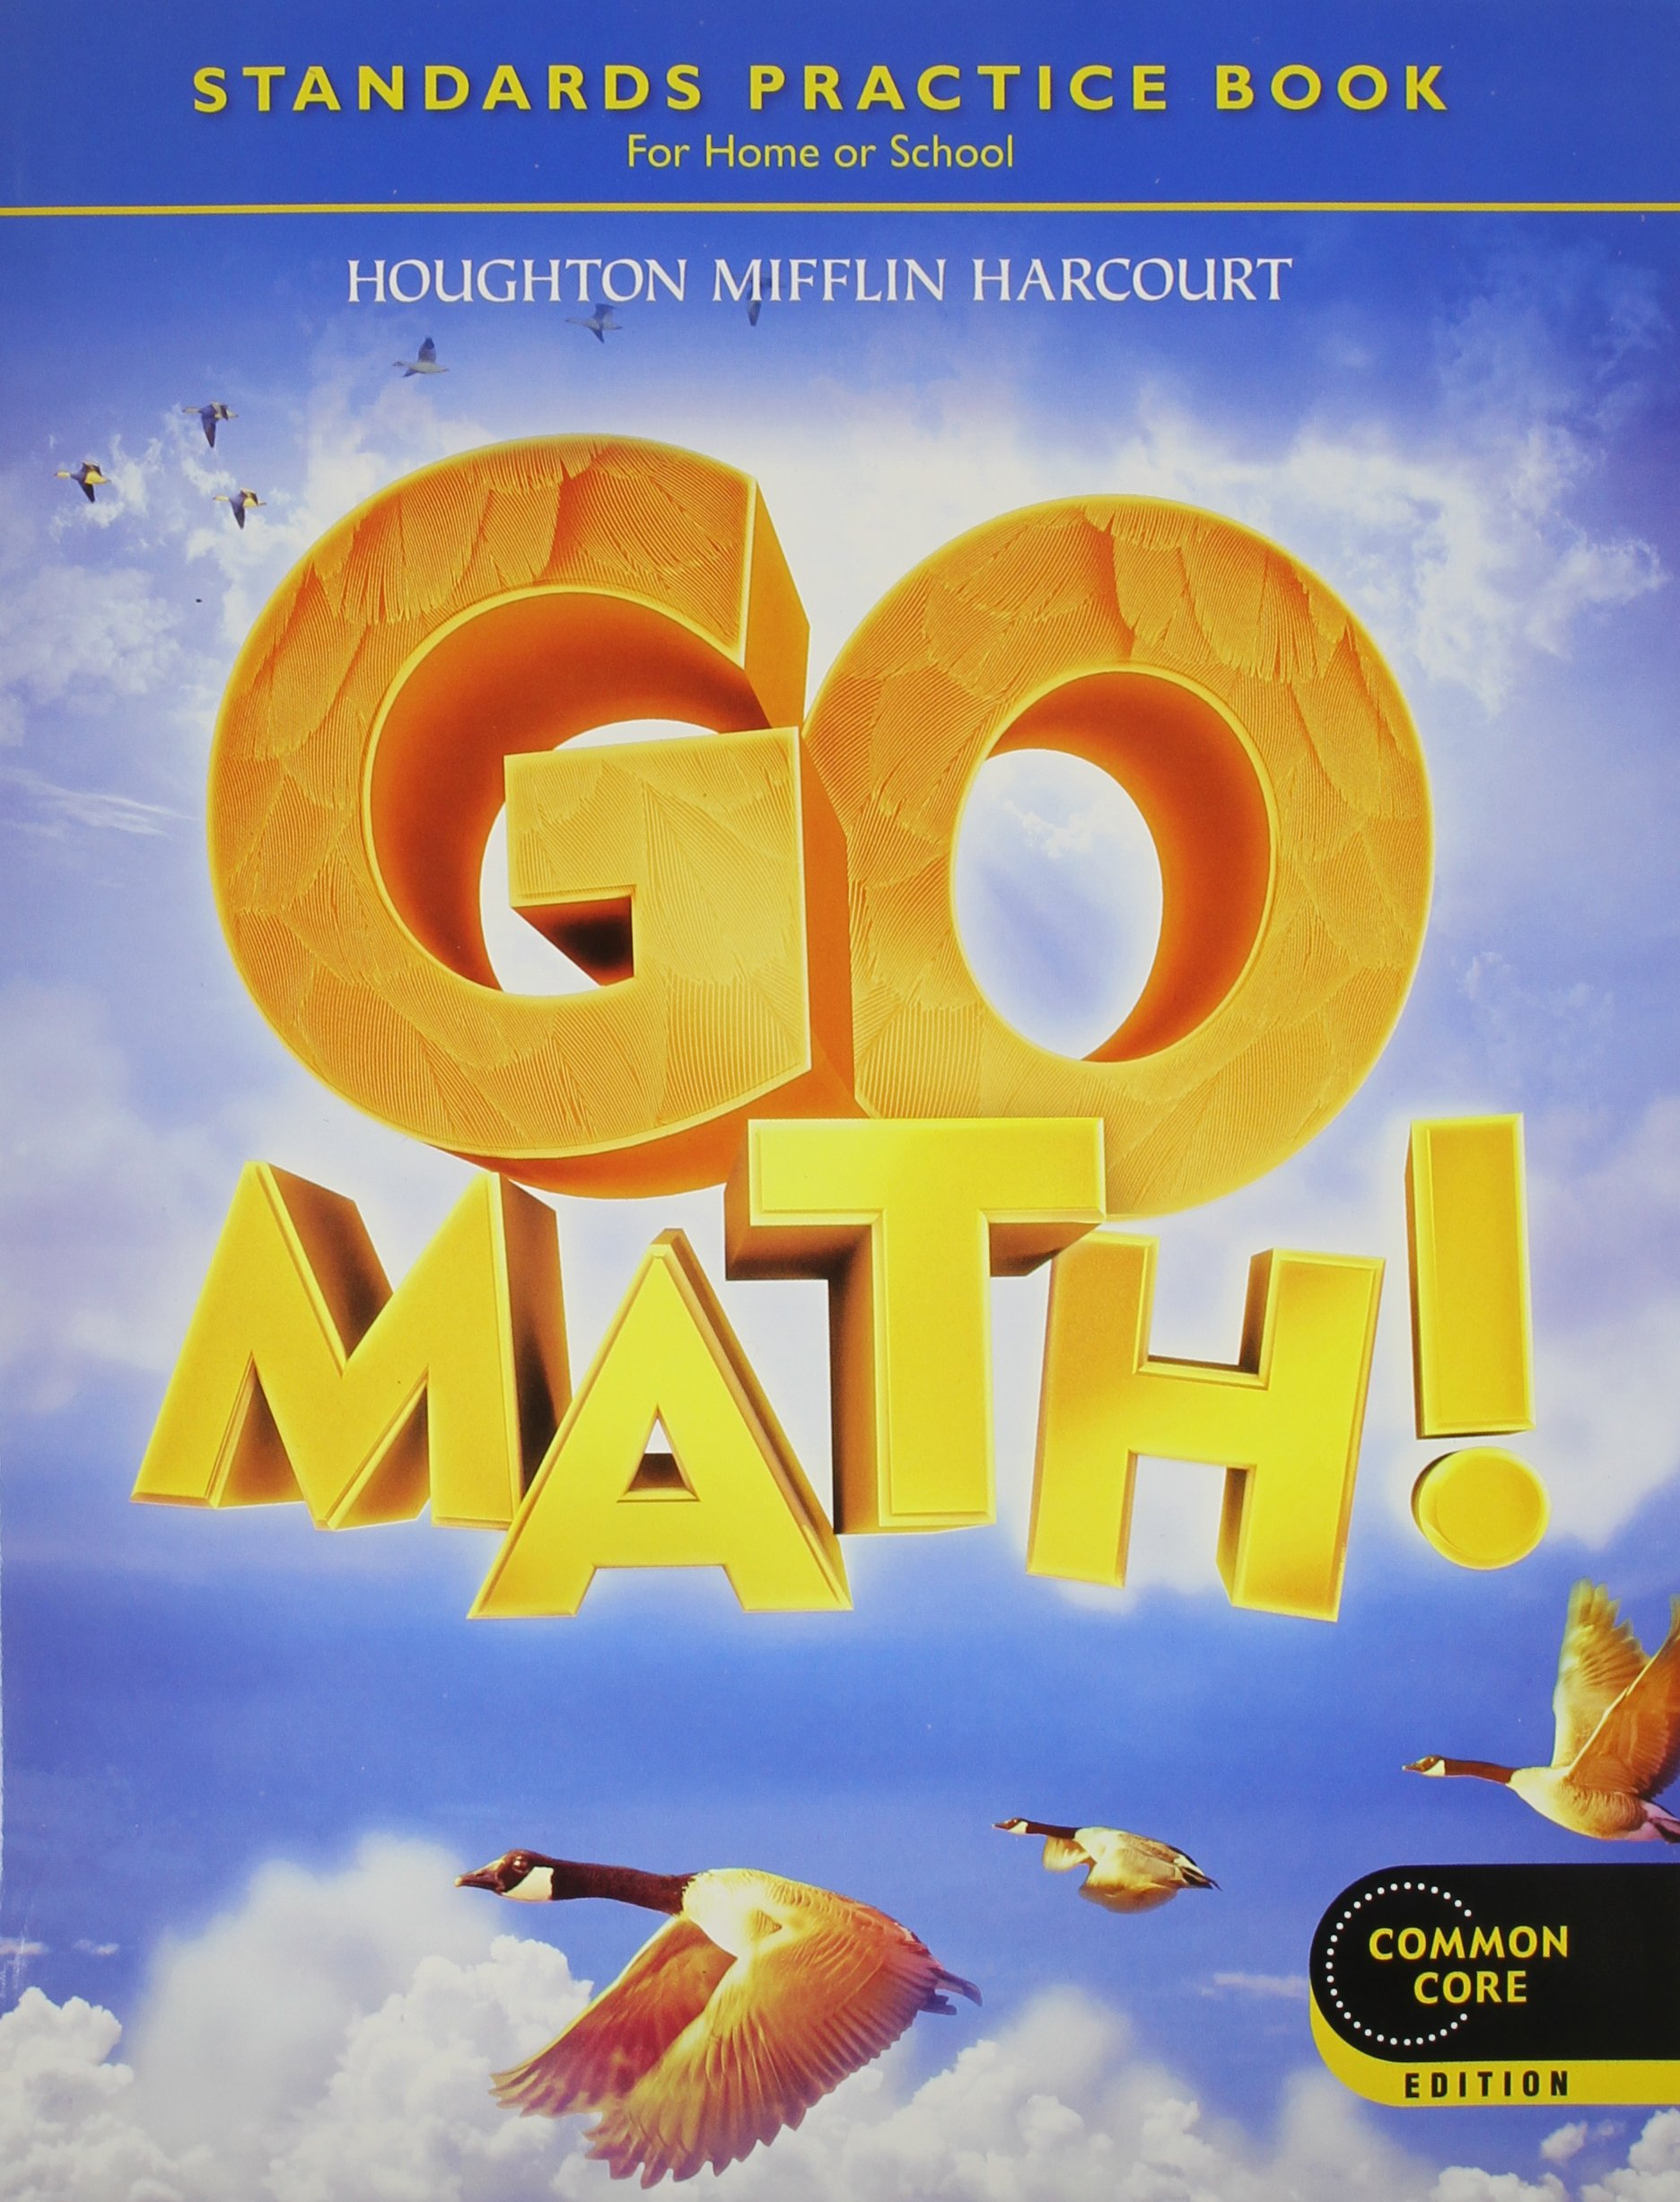 Worksheets Houghton Mifflin Math Worksheets buy go math practice book grade 4 common core edition online at low prices in india co